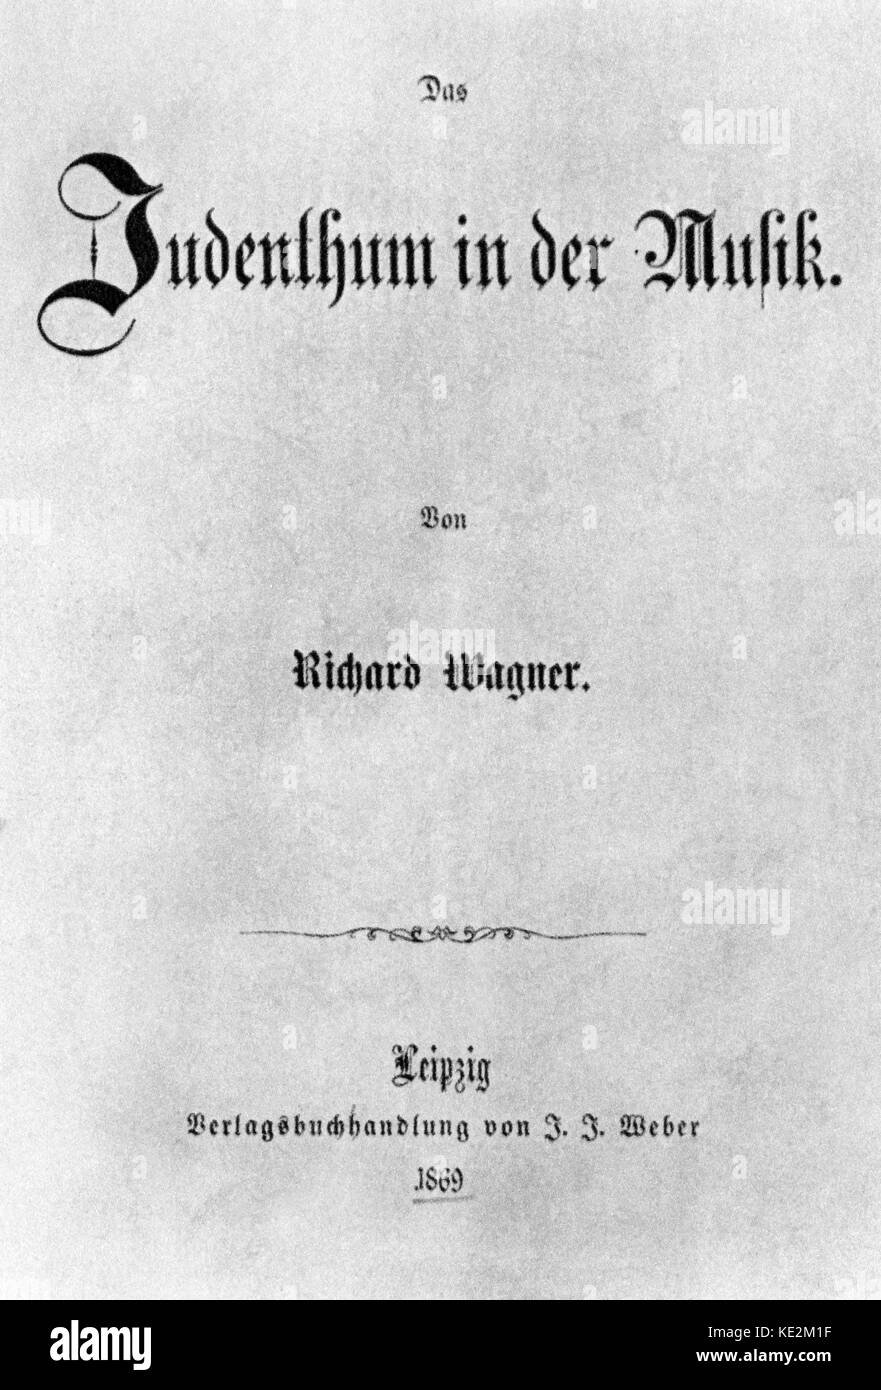 richard wagner and 19th century anti semitism